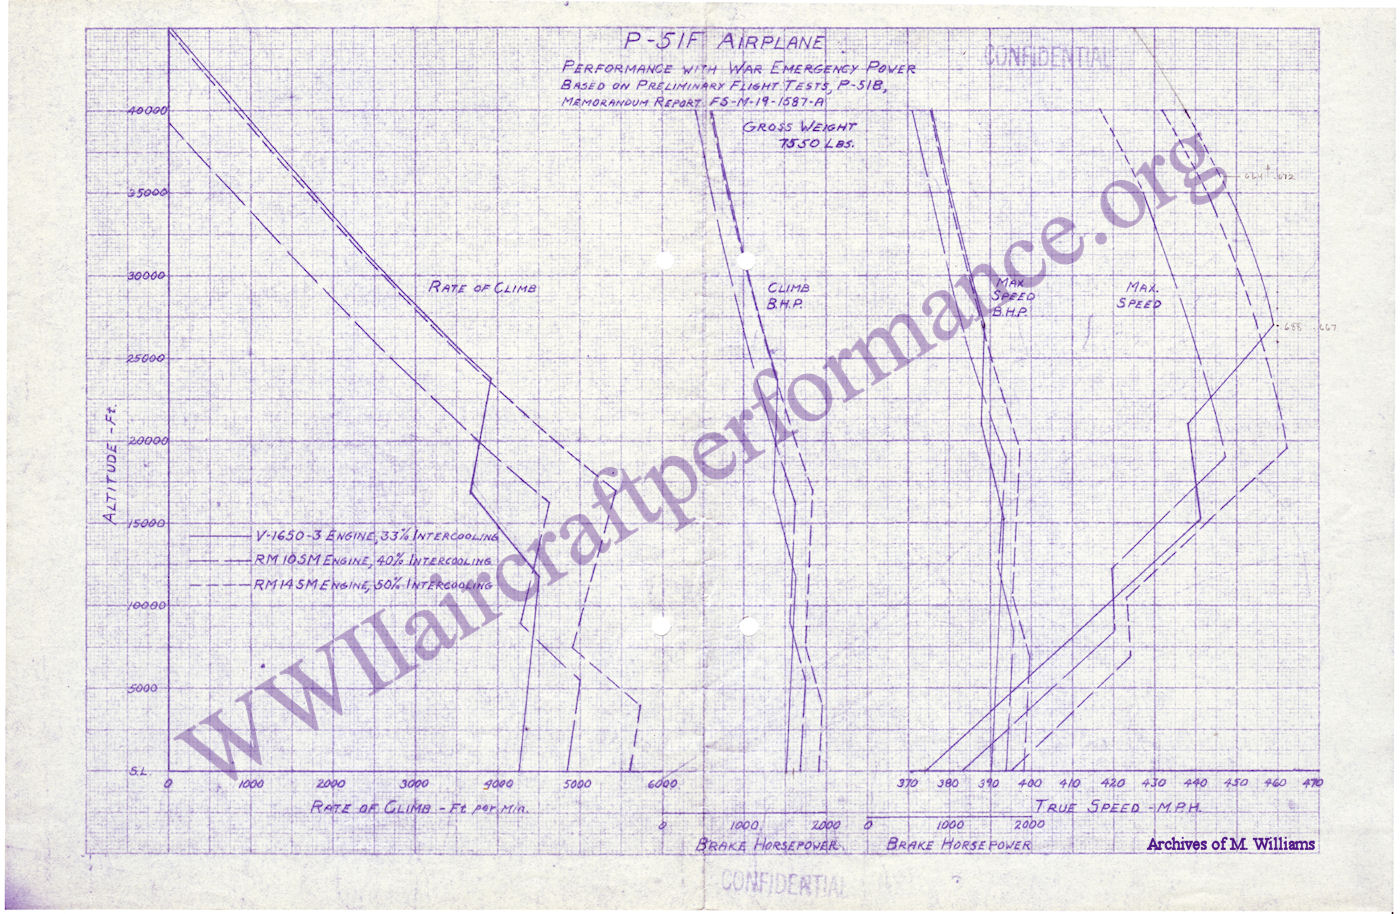 P 51 Mustang Performance Engine Diagram 51f Airplane With War Emergency Power